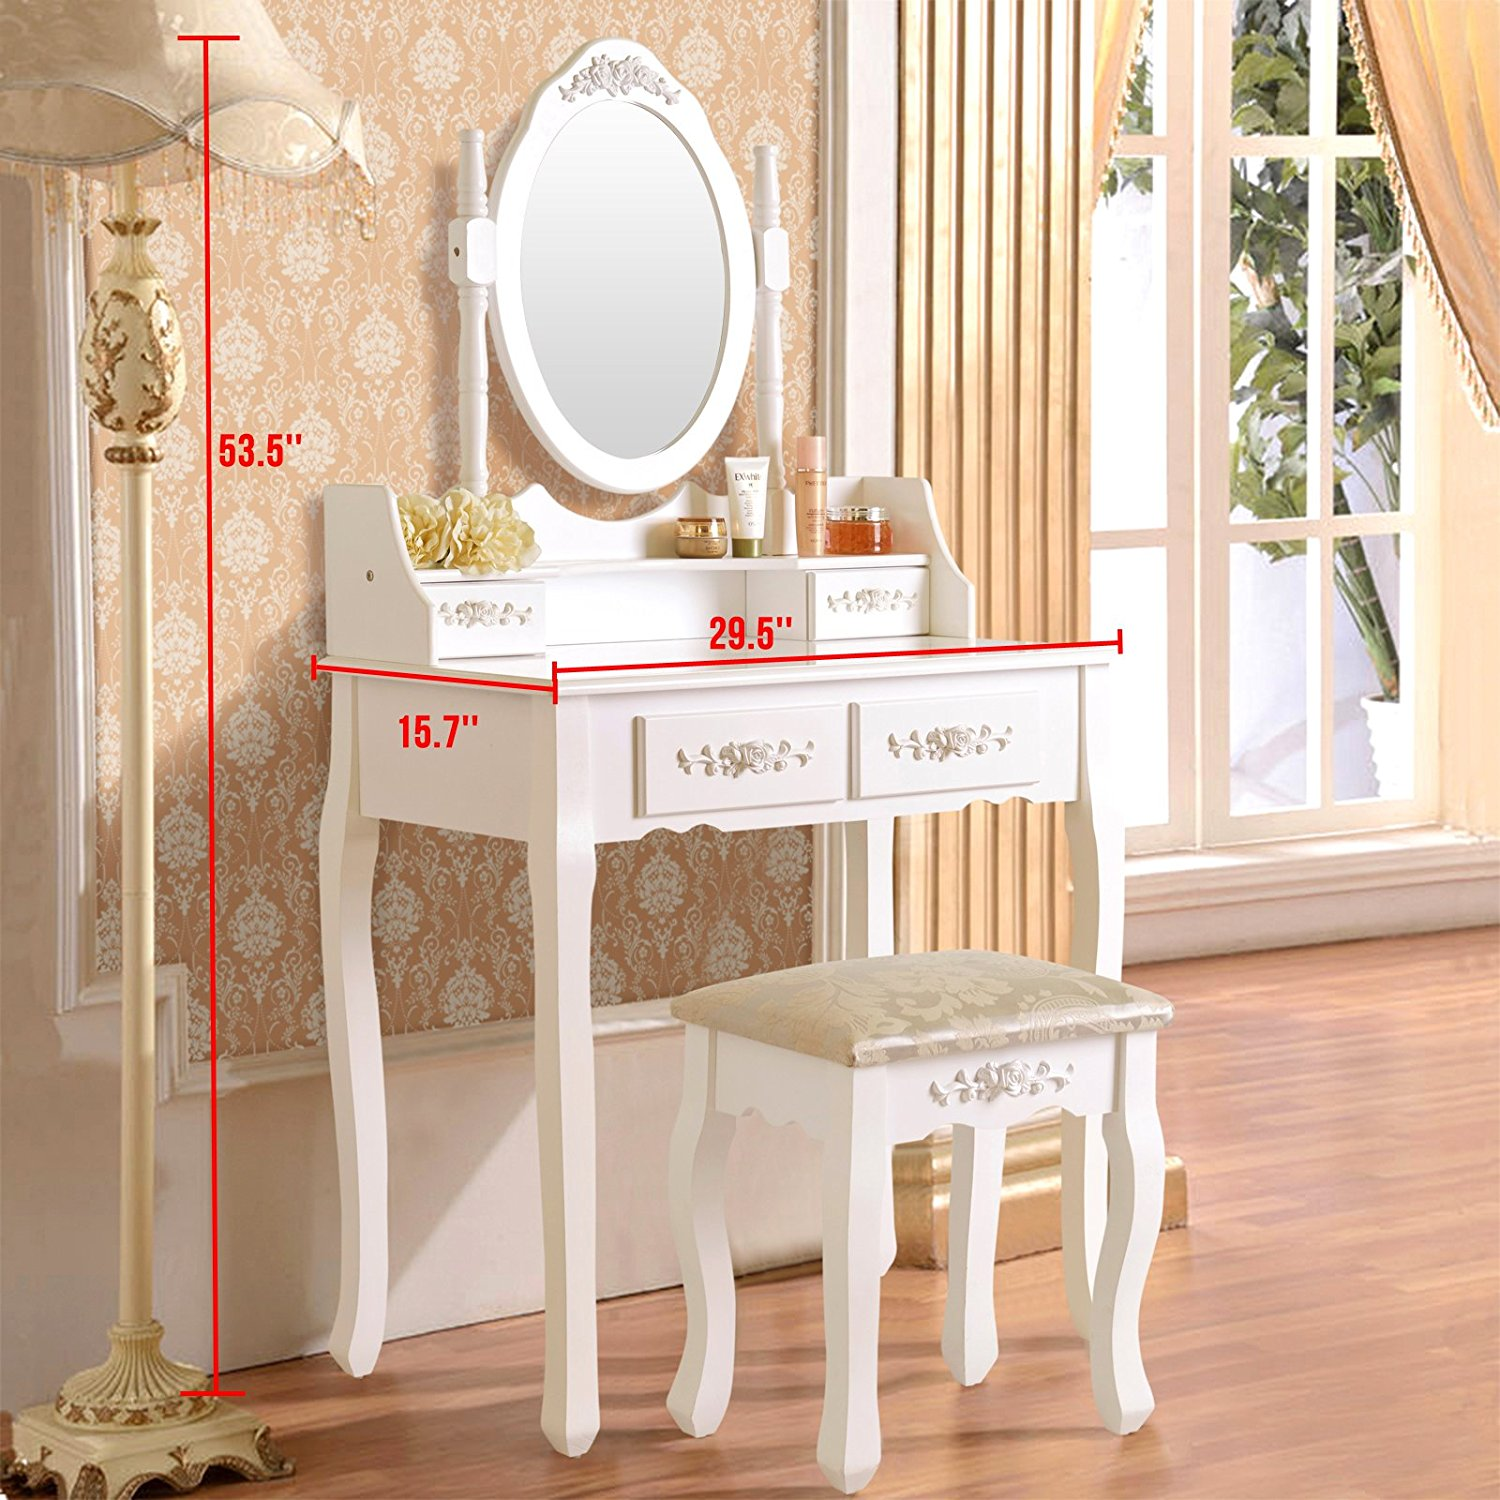 Ubesgoo Elegance White Dressing Table Vanity Table And Stool Set Wood Makeup Desk With 4 Drawers Mirror Walmart Com Walmart Com